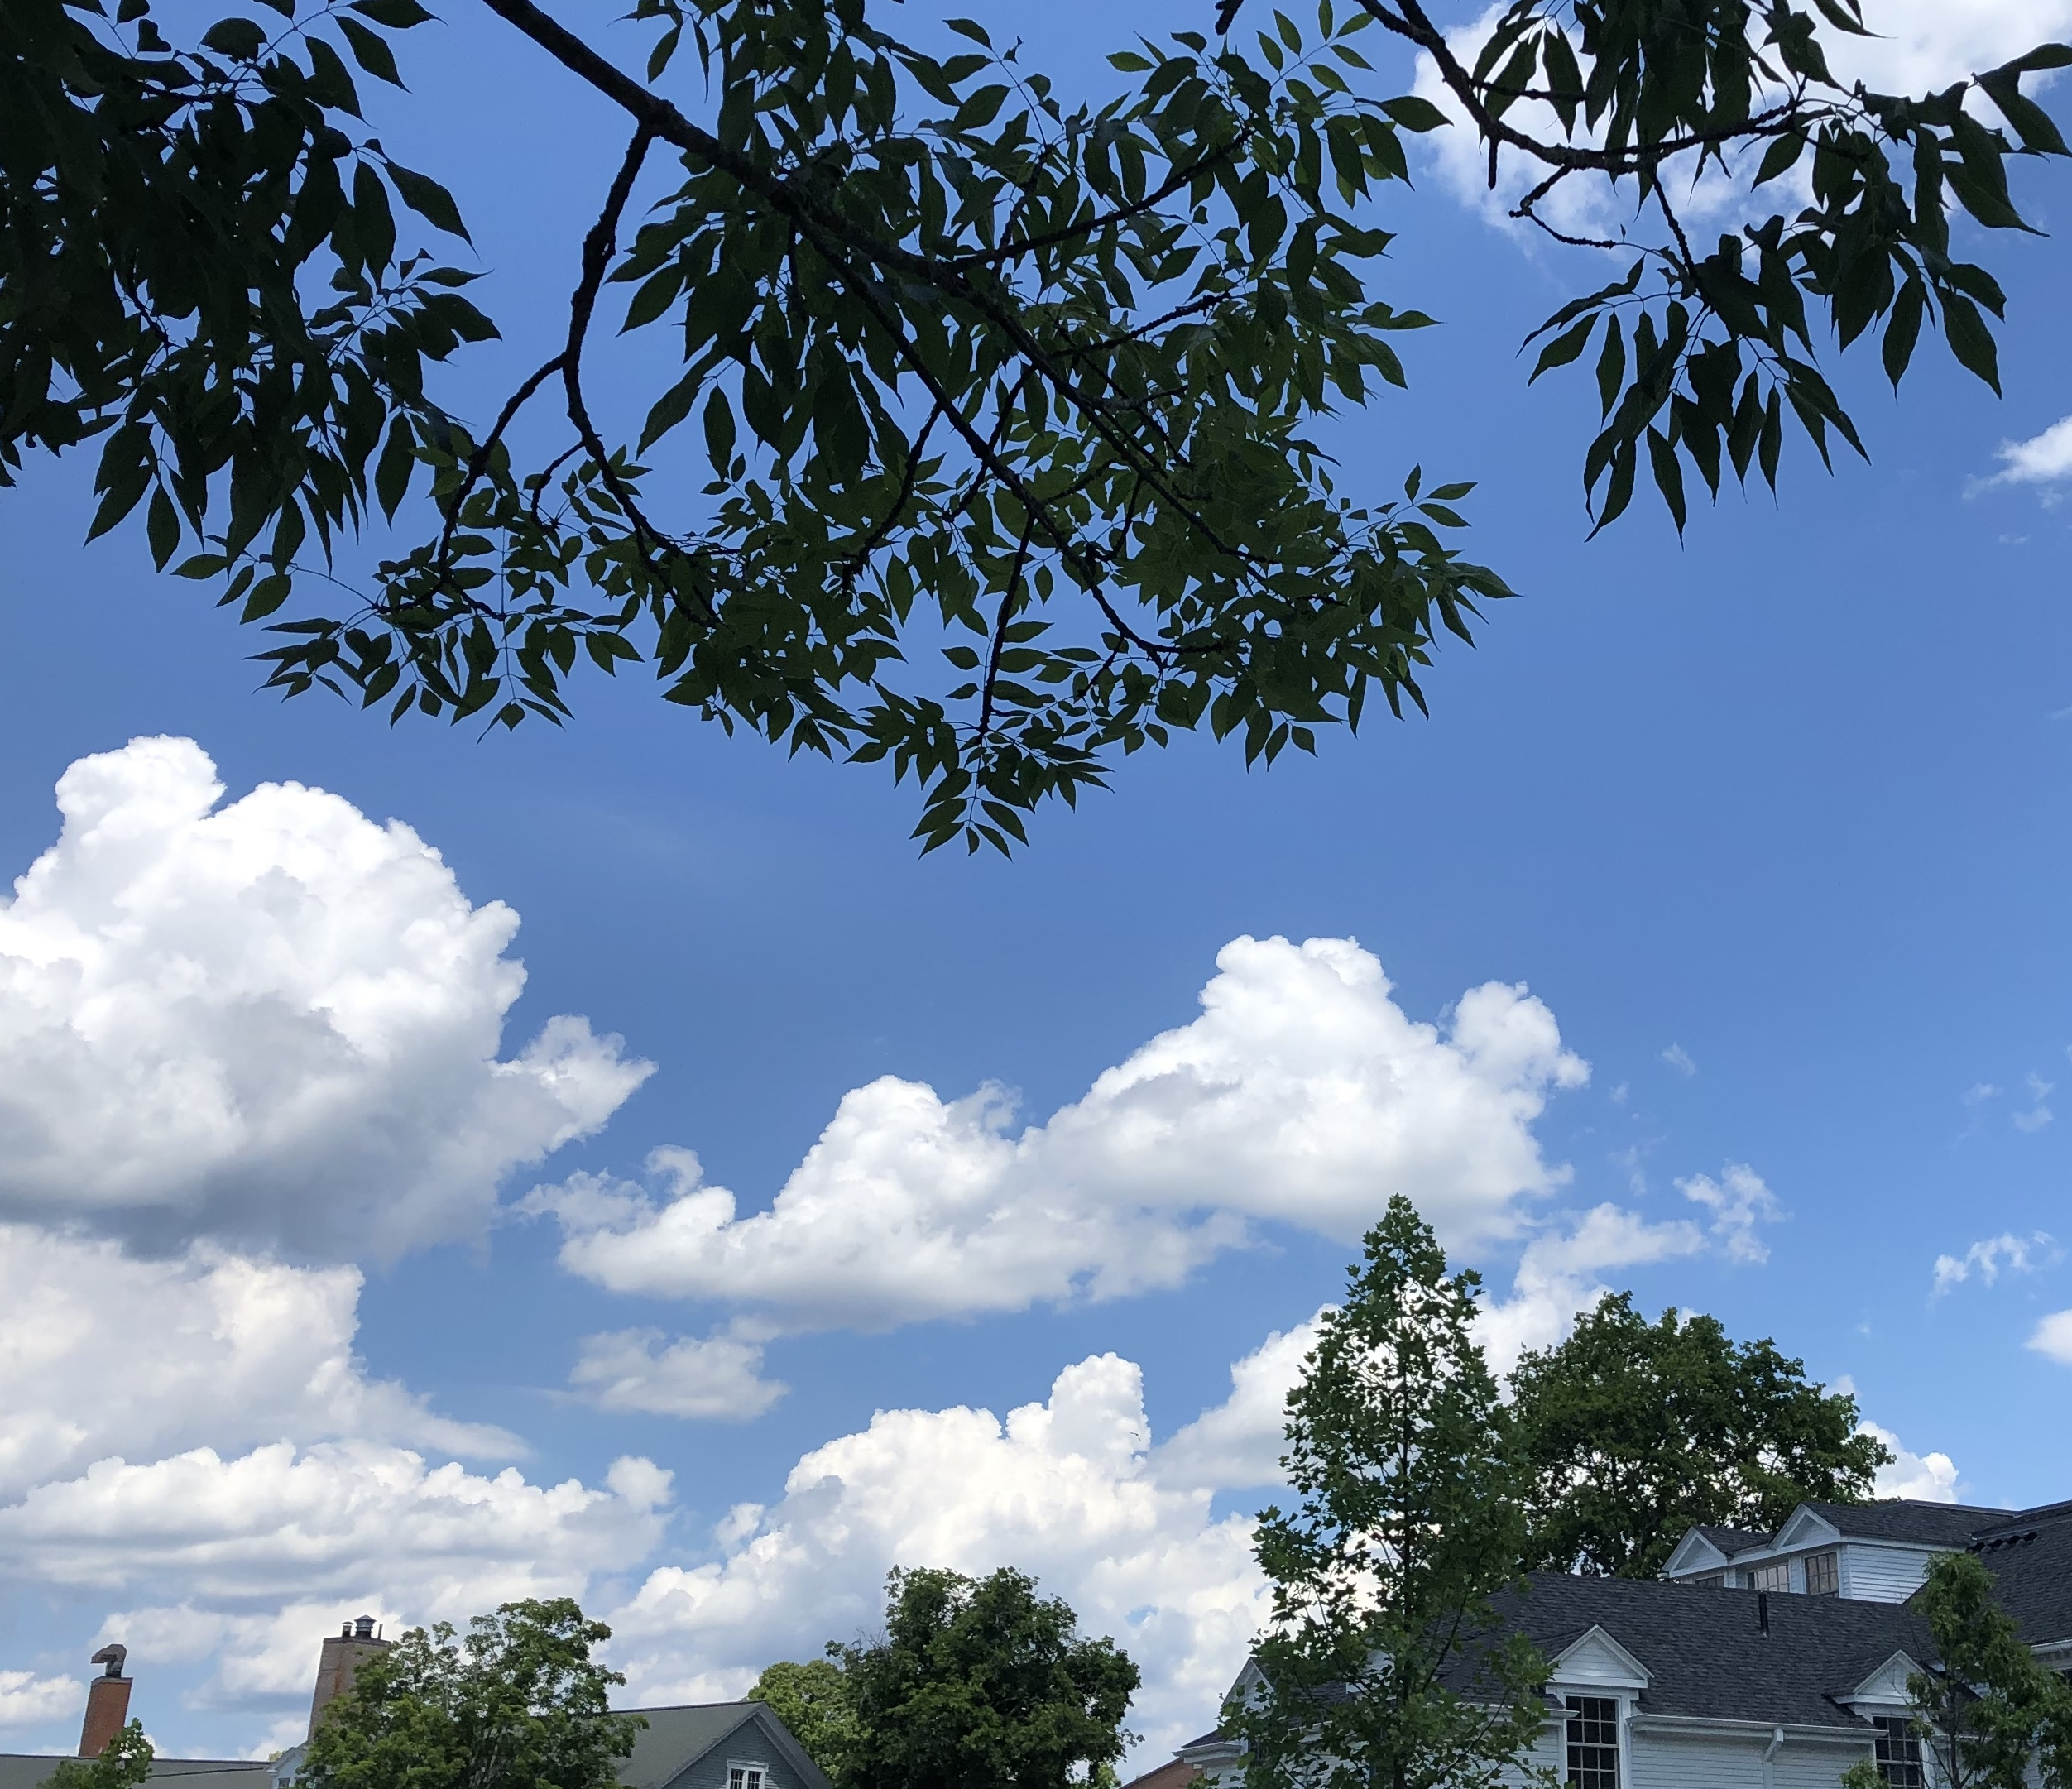 062620-clouds-and-blue-sky